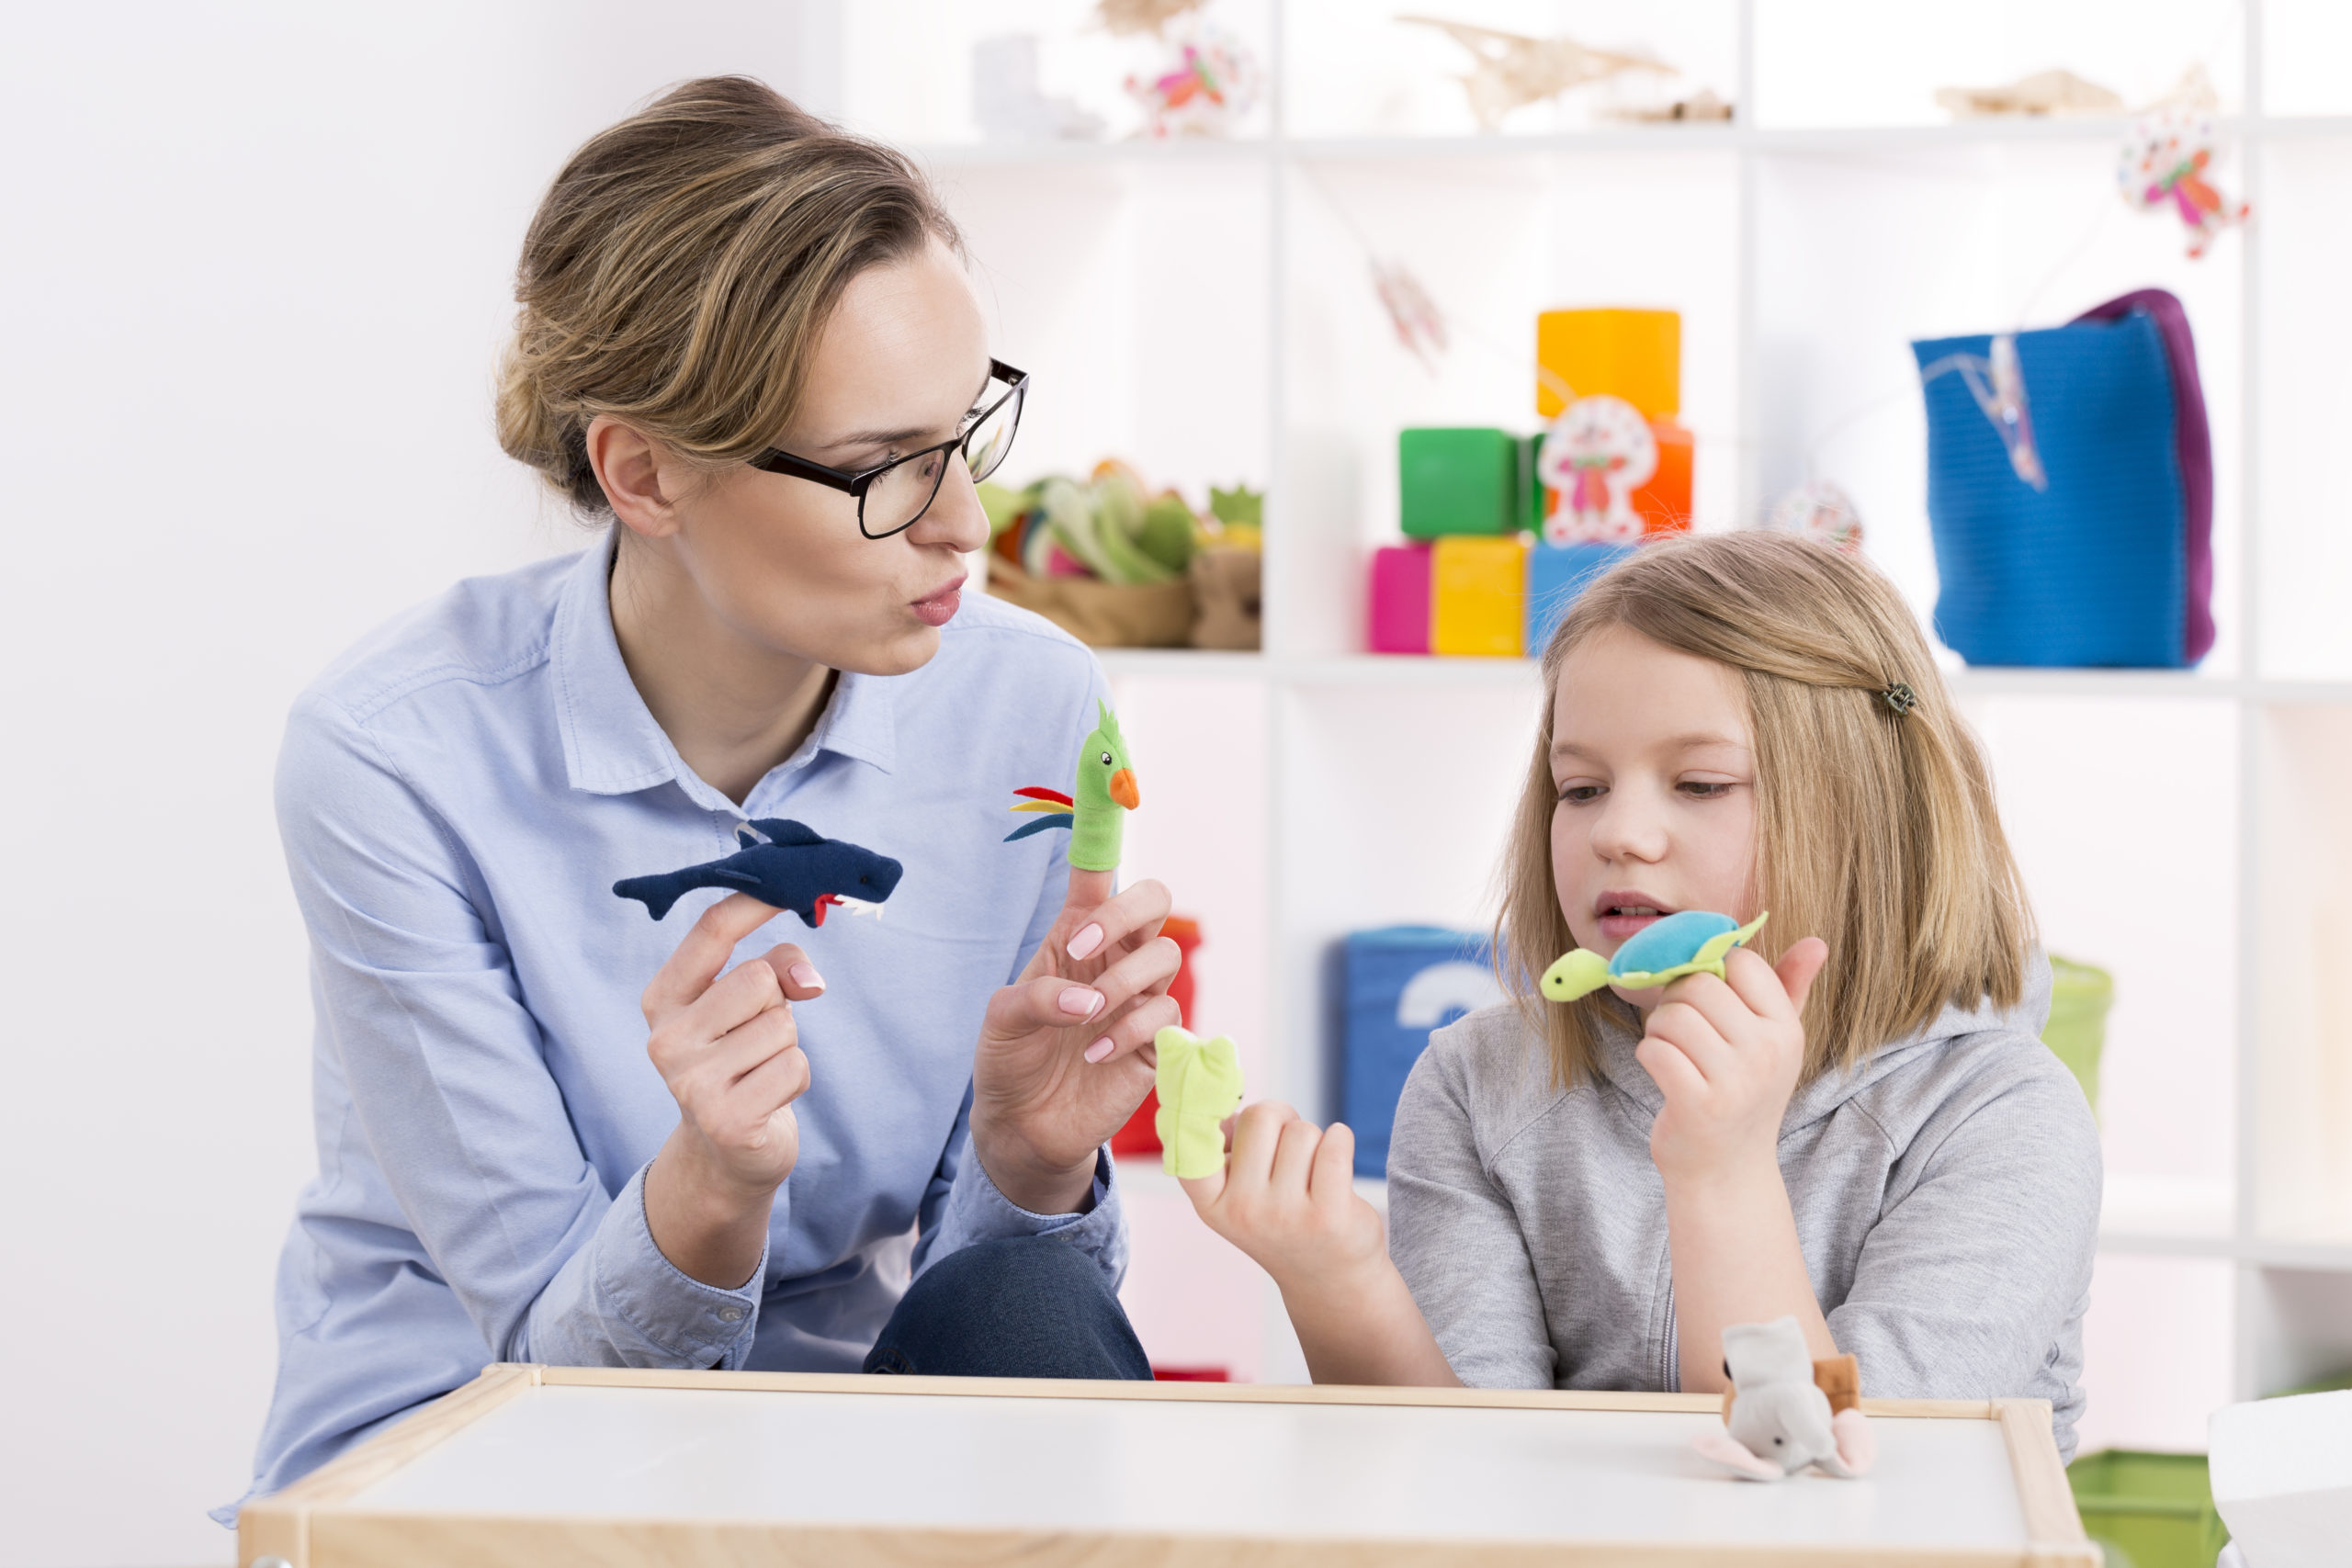 Schedule a Play Therapy Appointment with Butterfly Beginnings Play Therapy in Davenport, Iowa